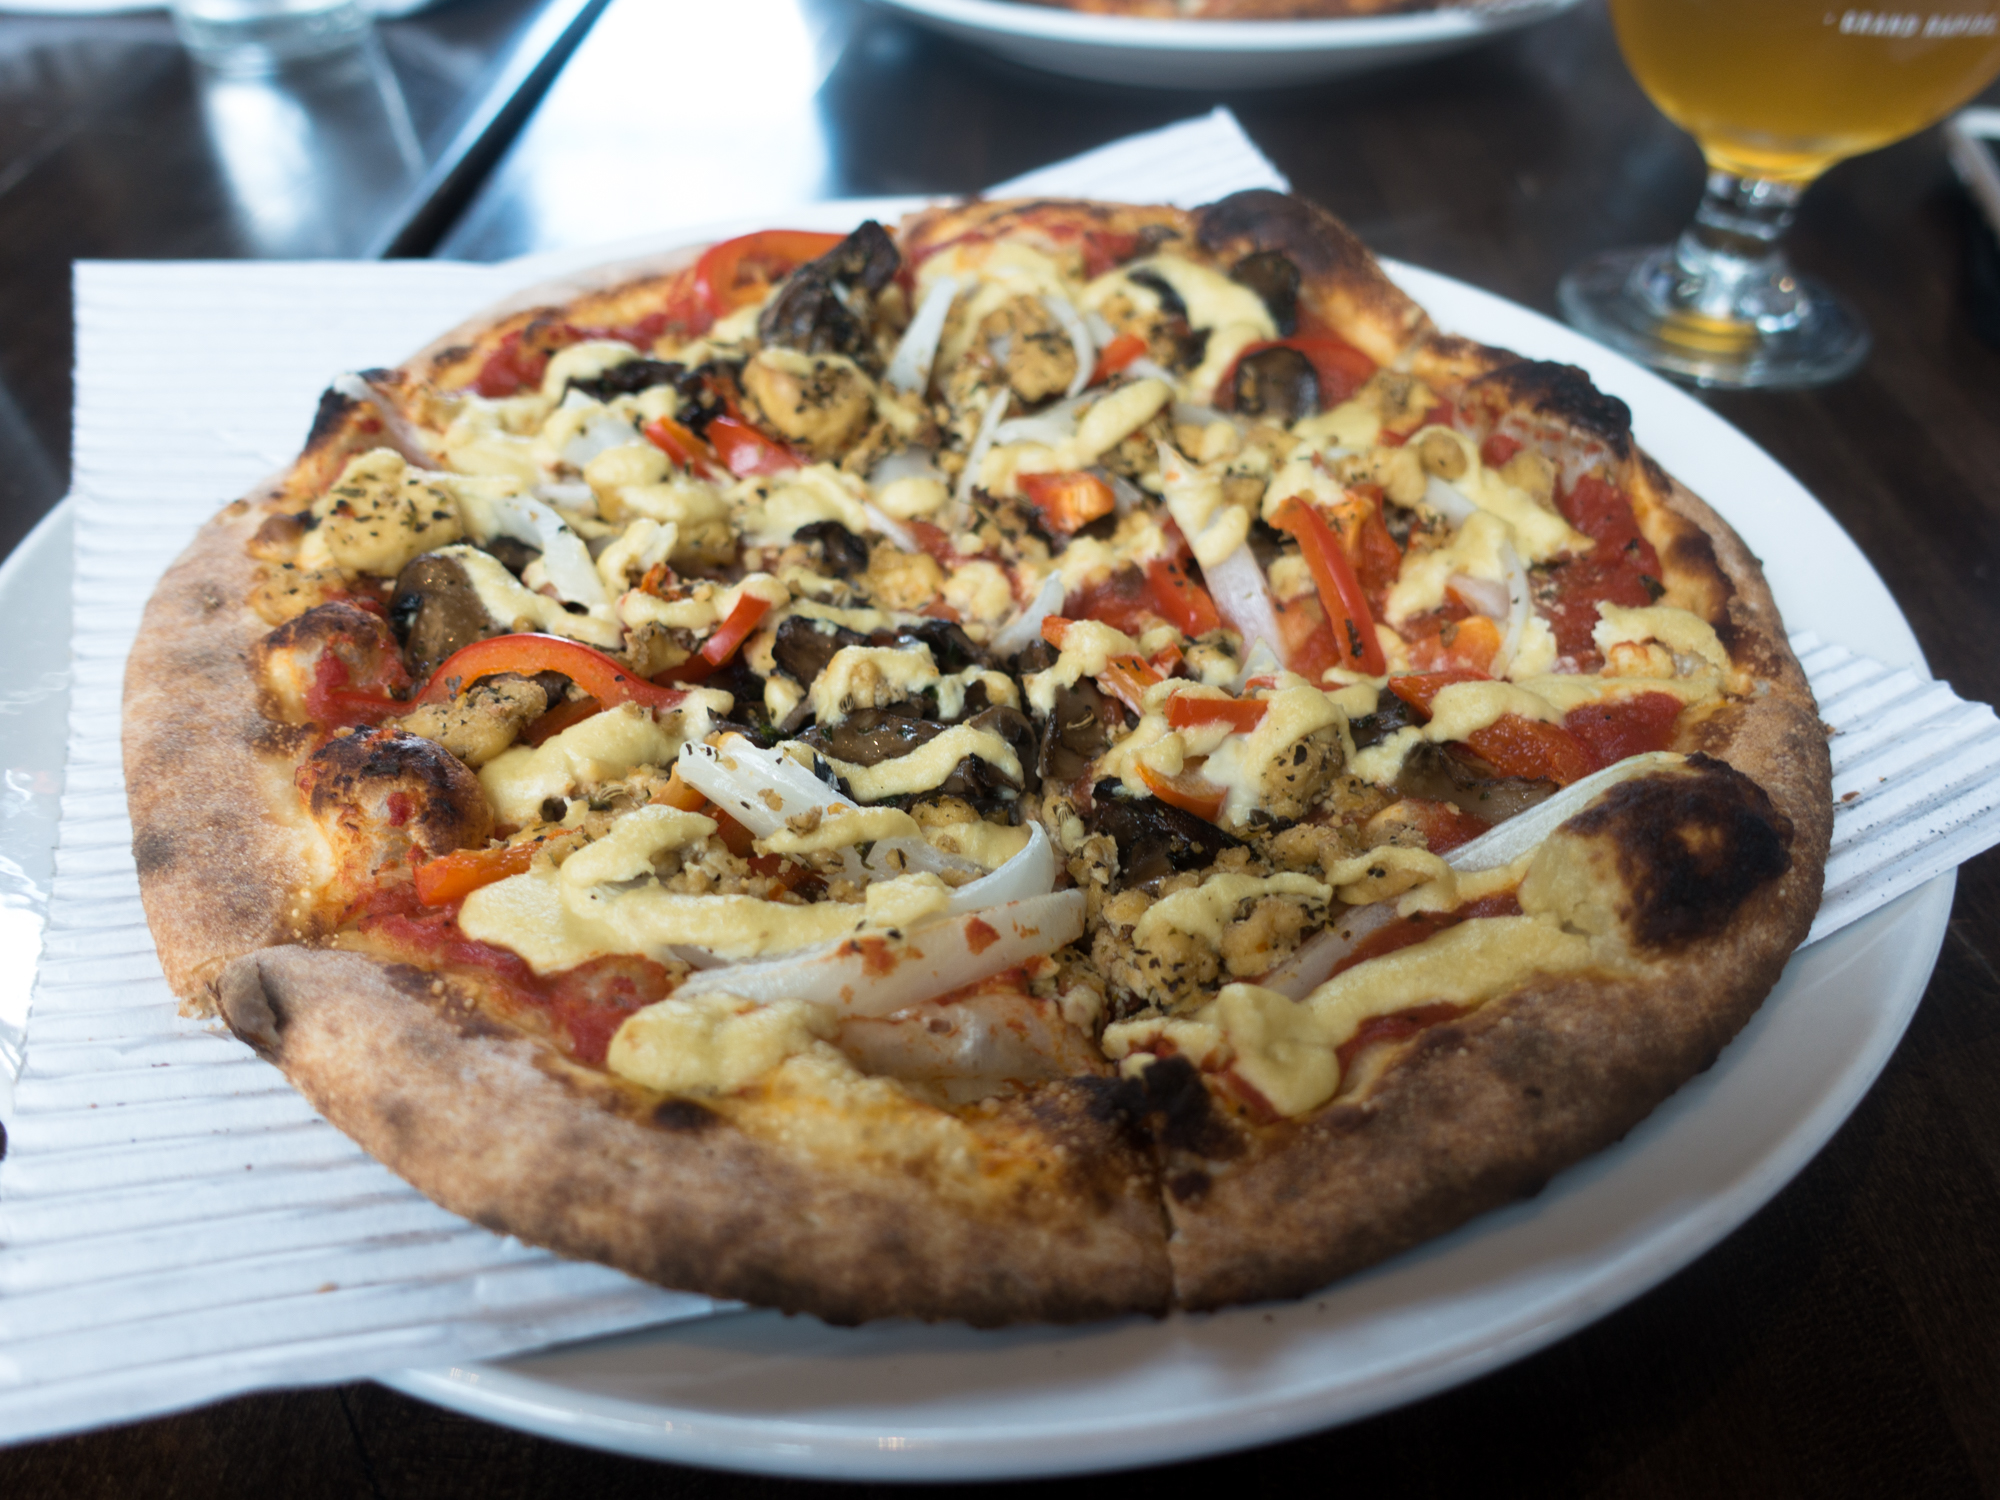 Whether you live in Grand Rapids or our planning a trip to this great Midwest city, I hope that this list of the Best Places for Vegan Pizza In Grand Rapids is helpful in your quest to find delicious vegan pizza! #vegan #pizza #travel #grandrapids